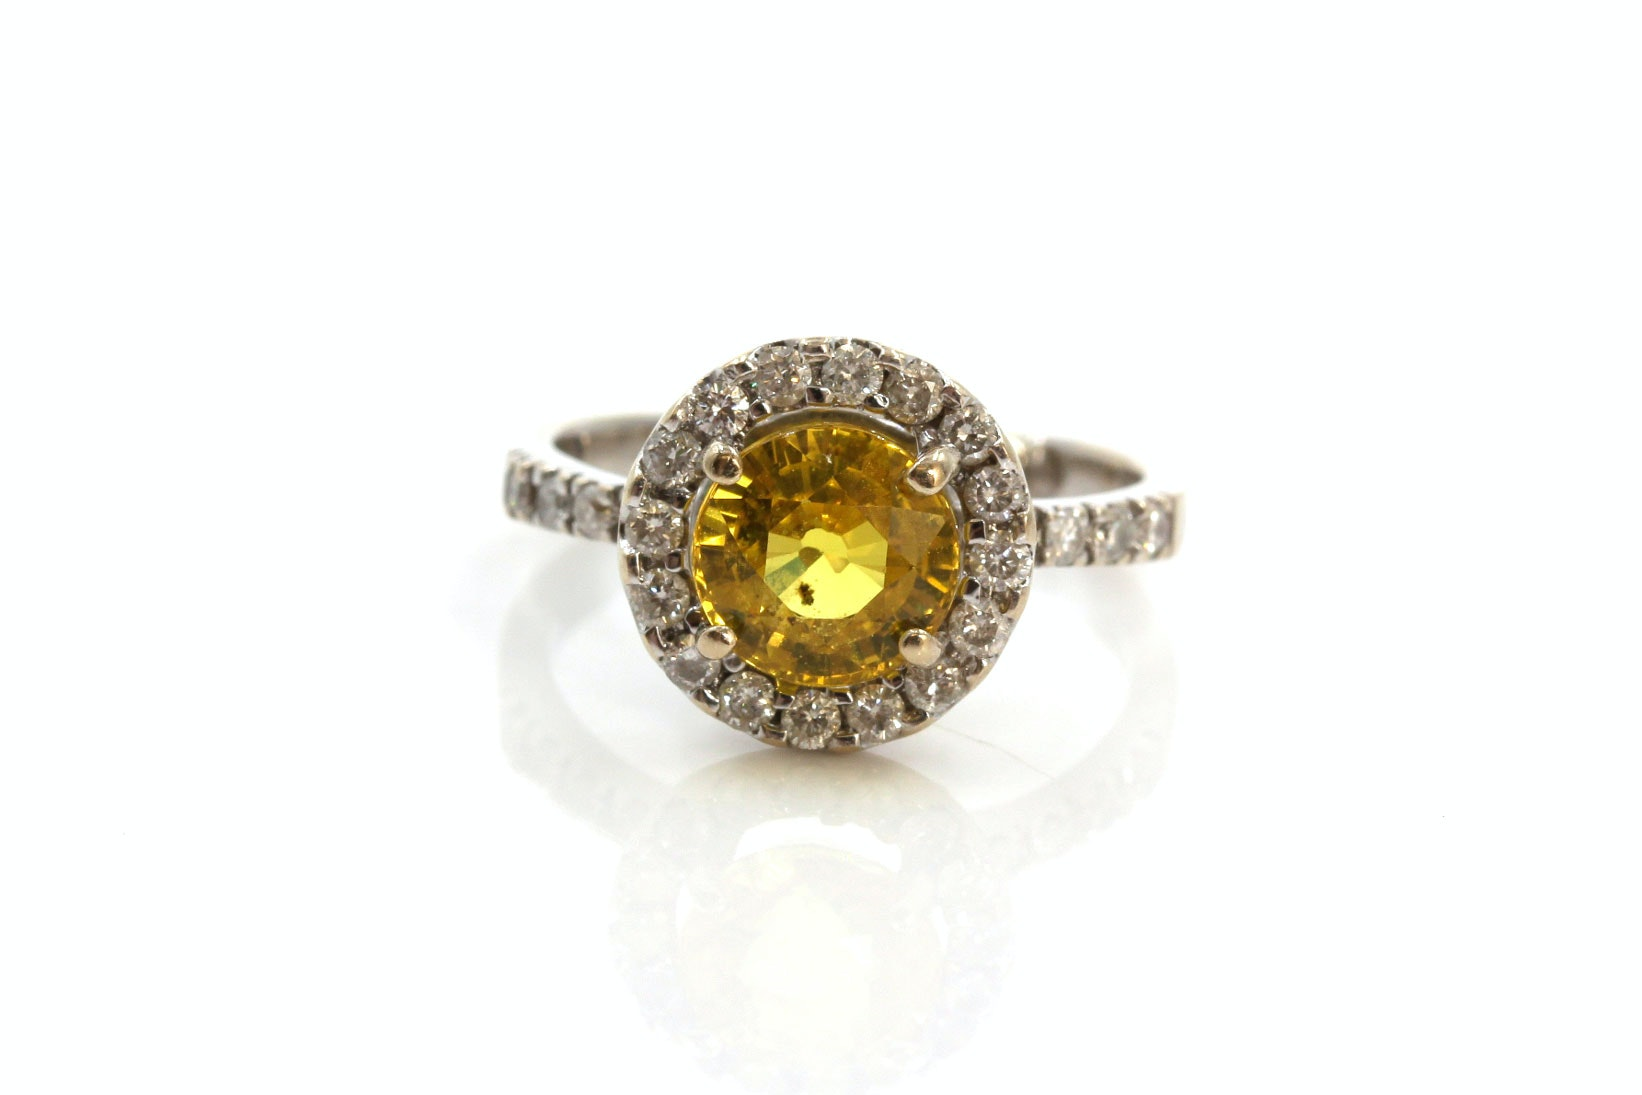 18K White Gold 1.95 CTS Yellow Sapphire and Diamond Ring